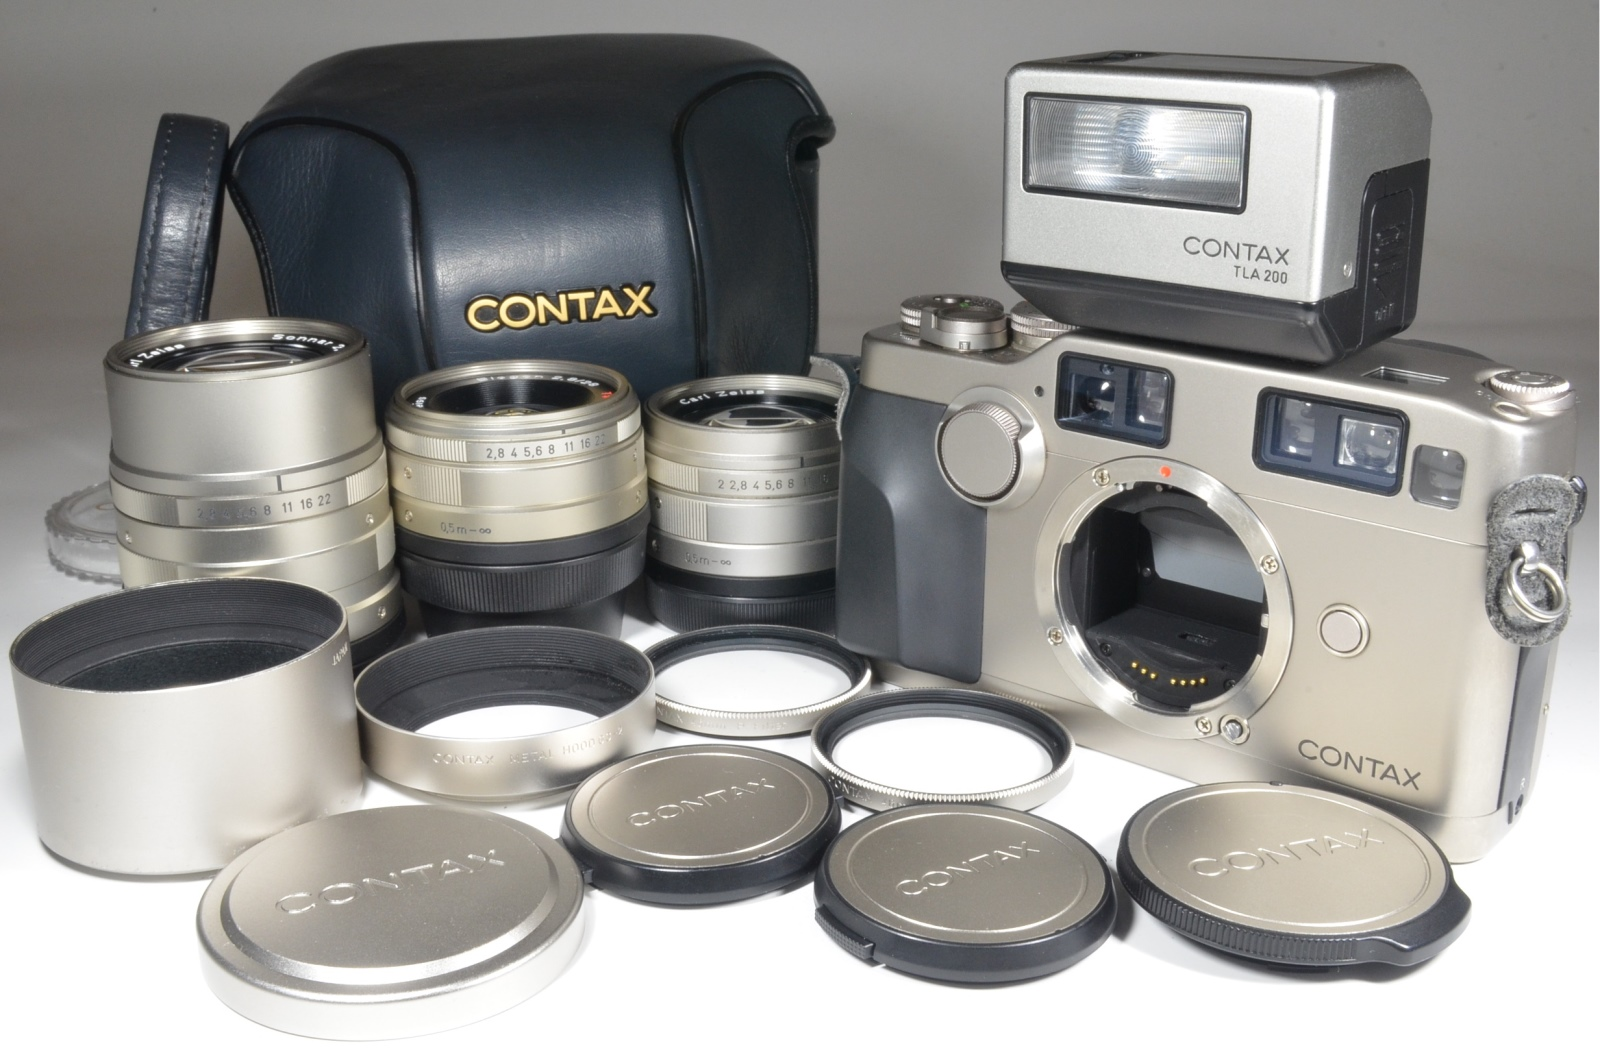 contax g2, full case, planar 45mm f2, biogon 28mm f2.8, sonnar 90mm f2.8, tla200